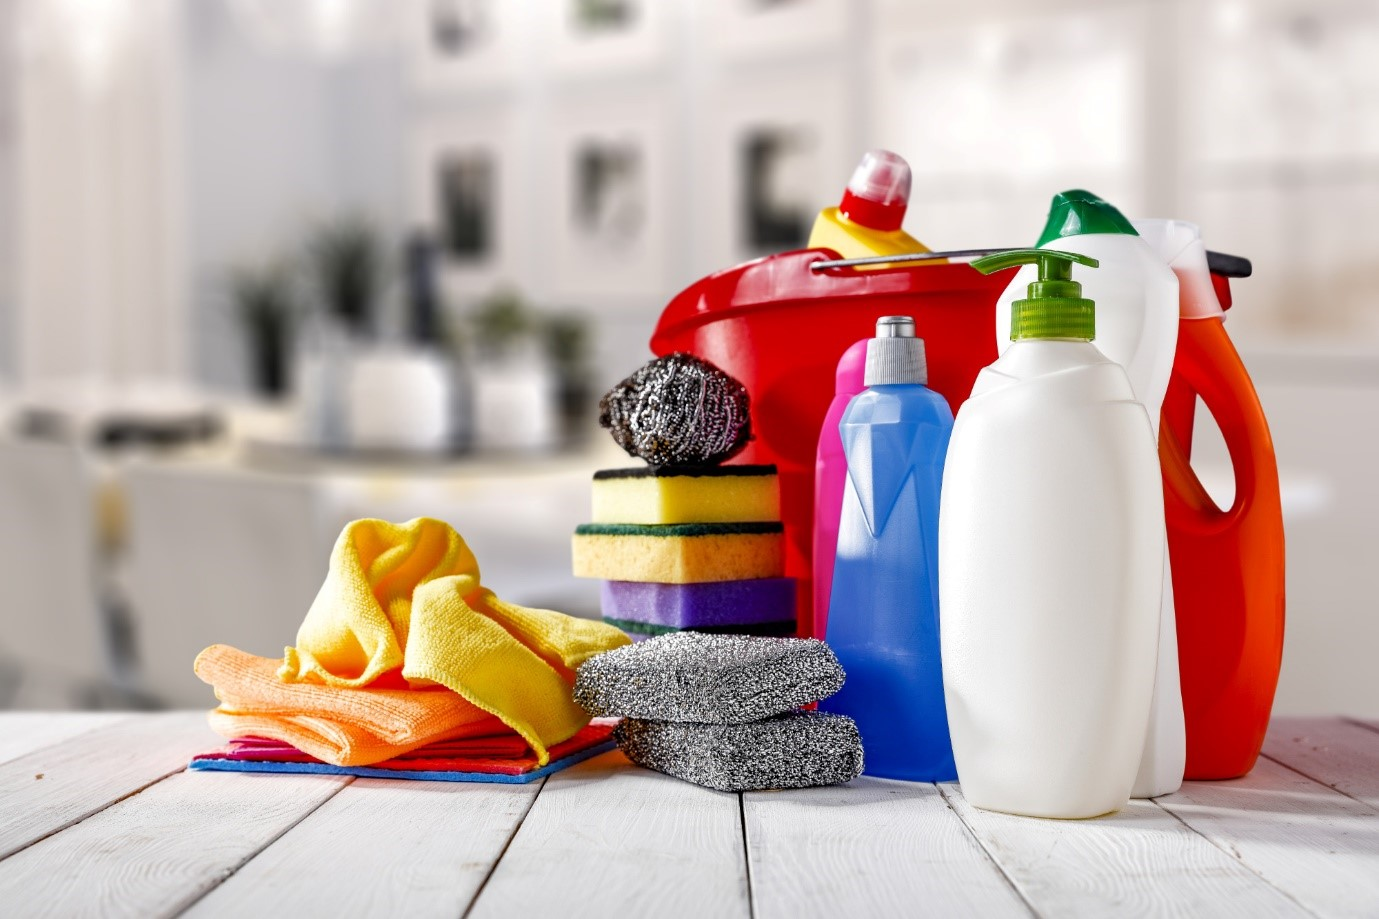 image - Tossing Toxic Cleaning Products Aside for These Natural Alternatives